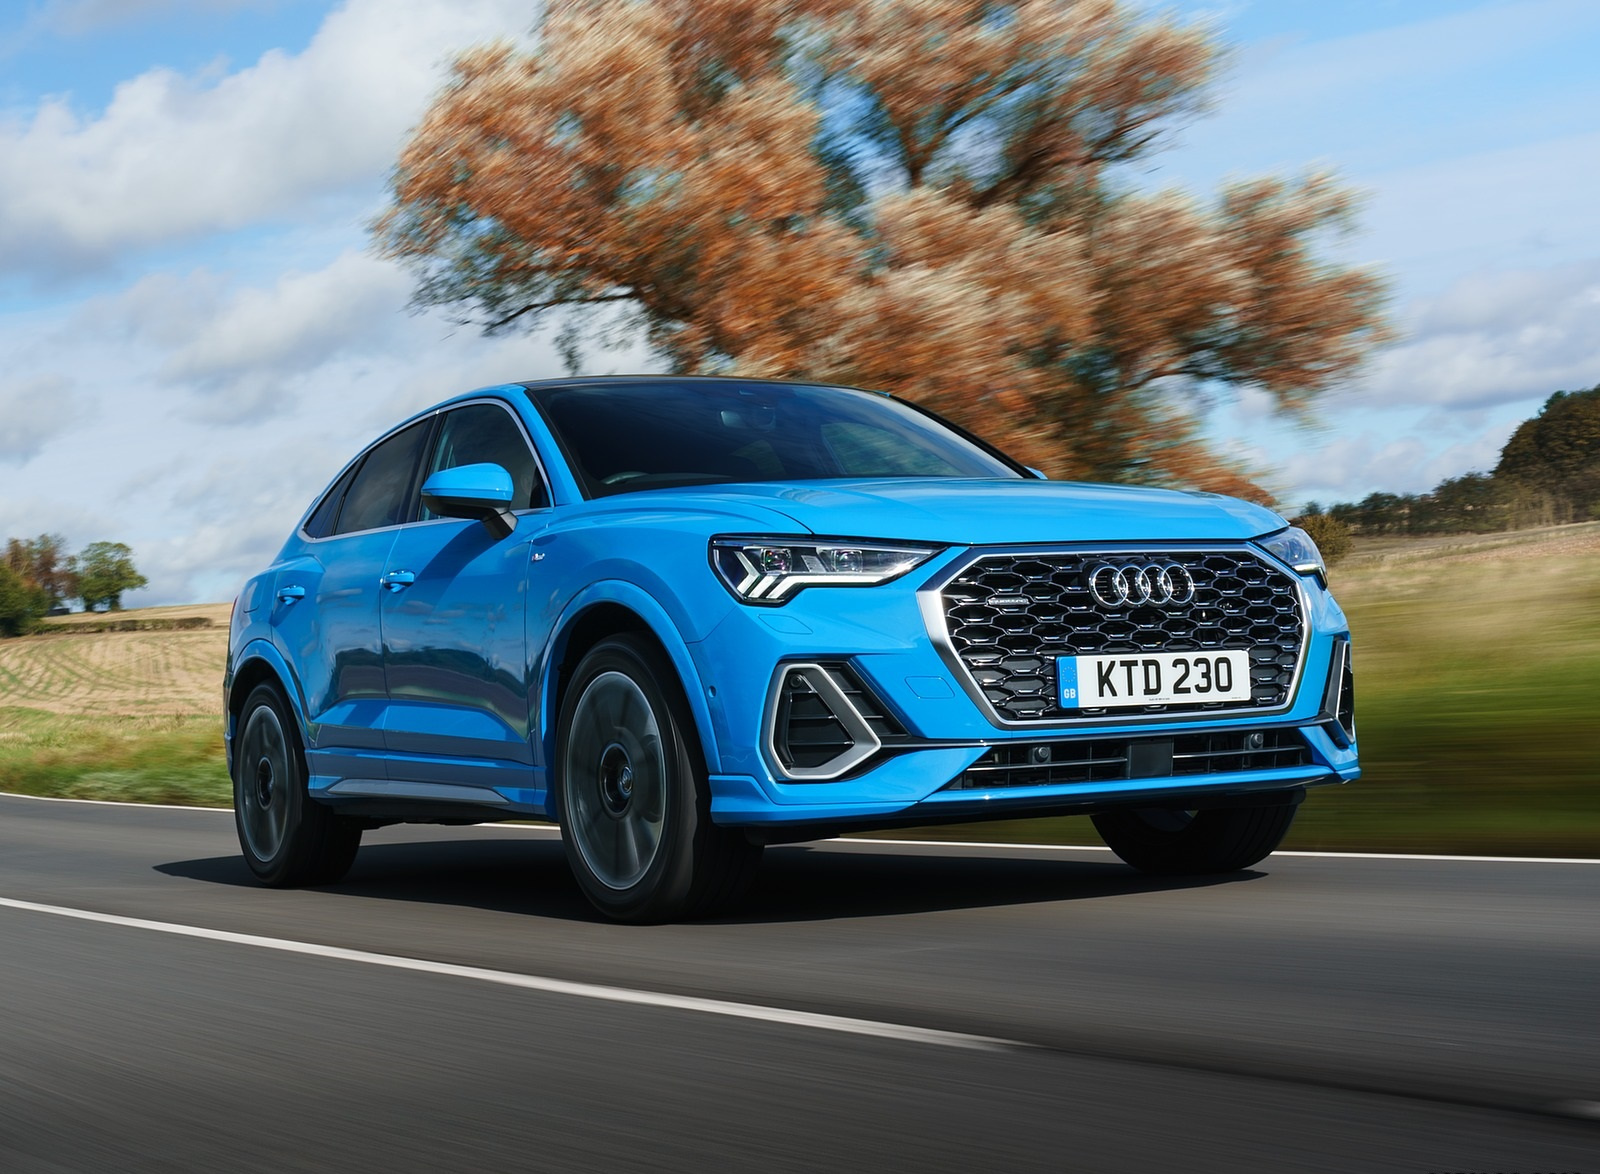 2020 Audi Q3 Sportback 45 TFSI quattro (UK-Spec) Front Three-Quarter Wallpapers (3)